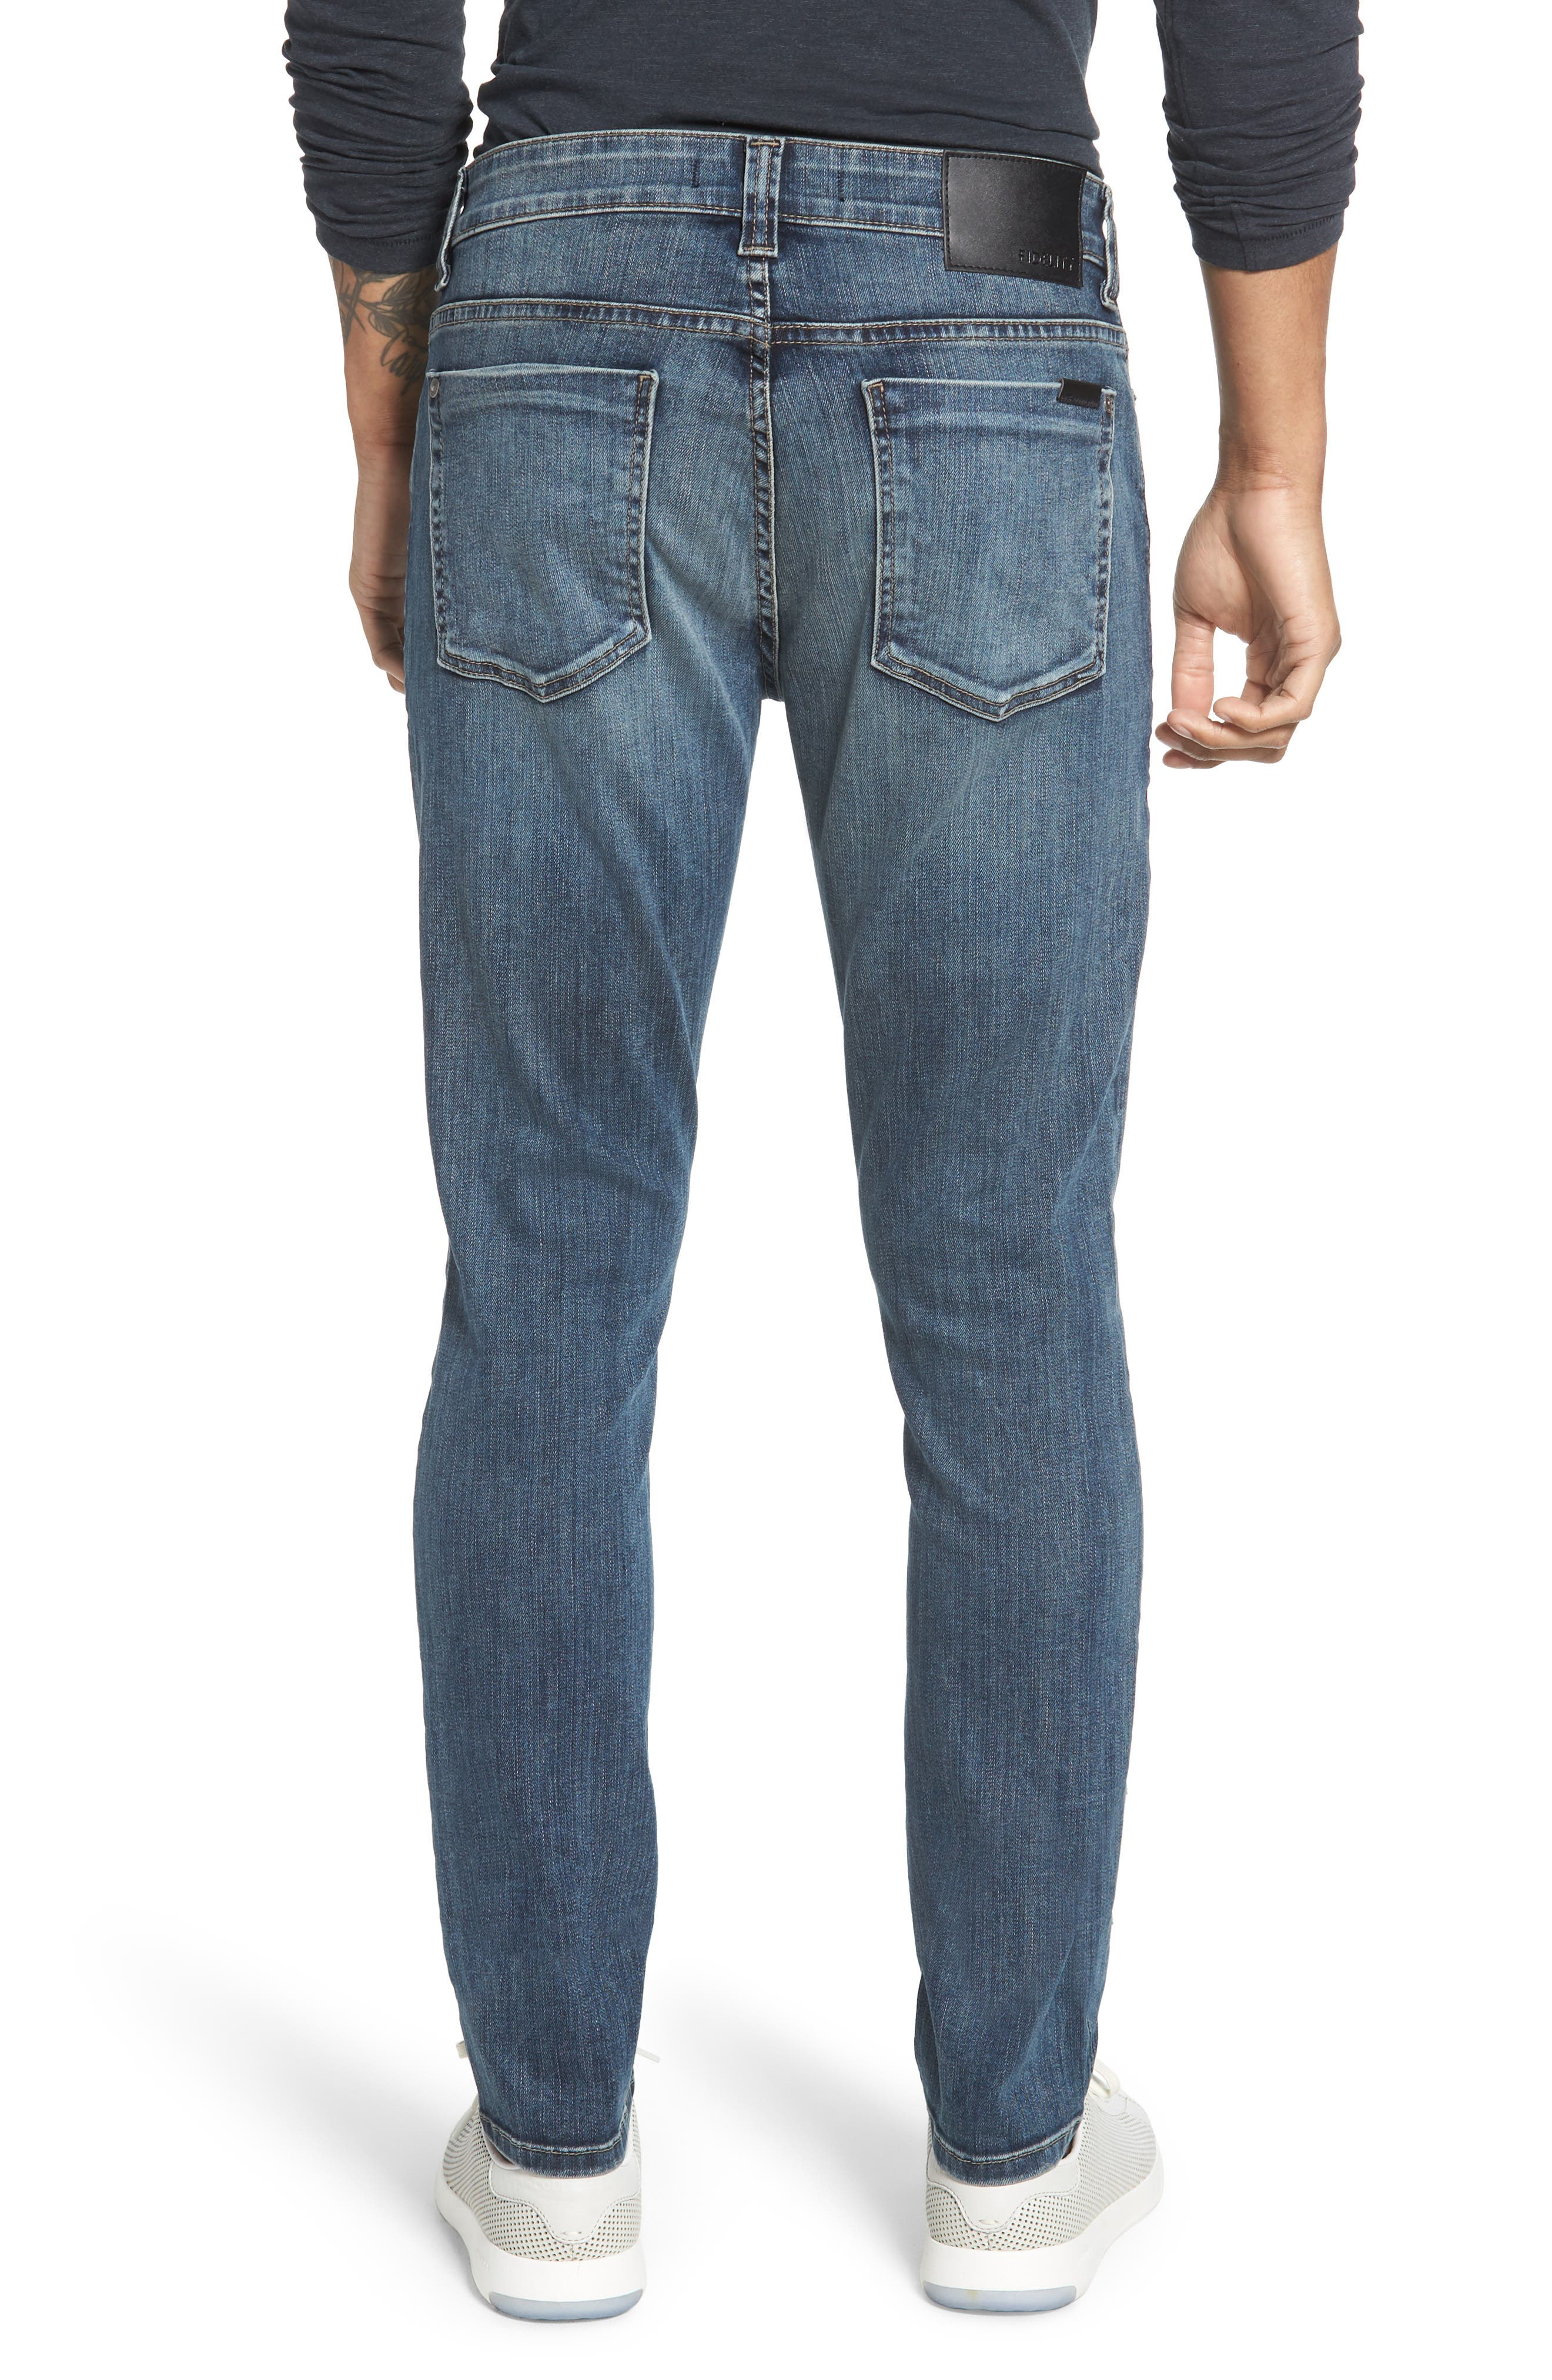 Jimmy Slim Straight Leg Jeans,                             Alternate thumbnail 2, color,                             CATHEDRAL